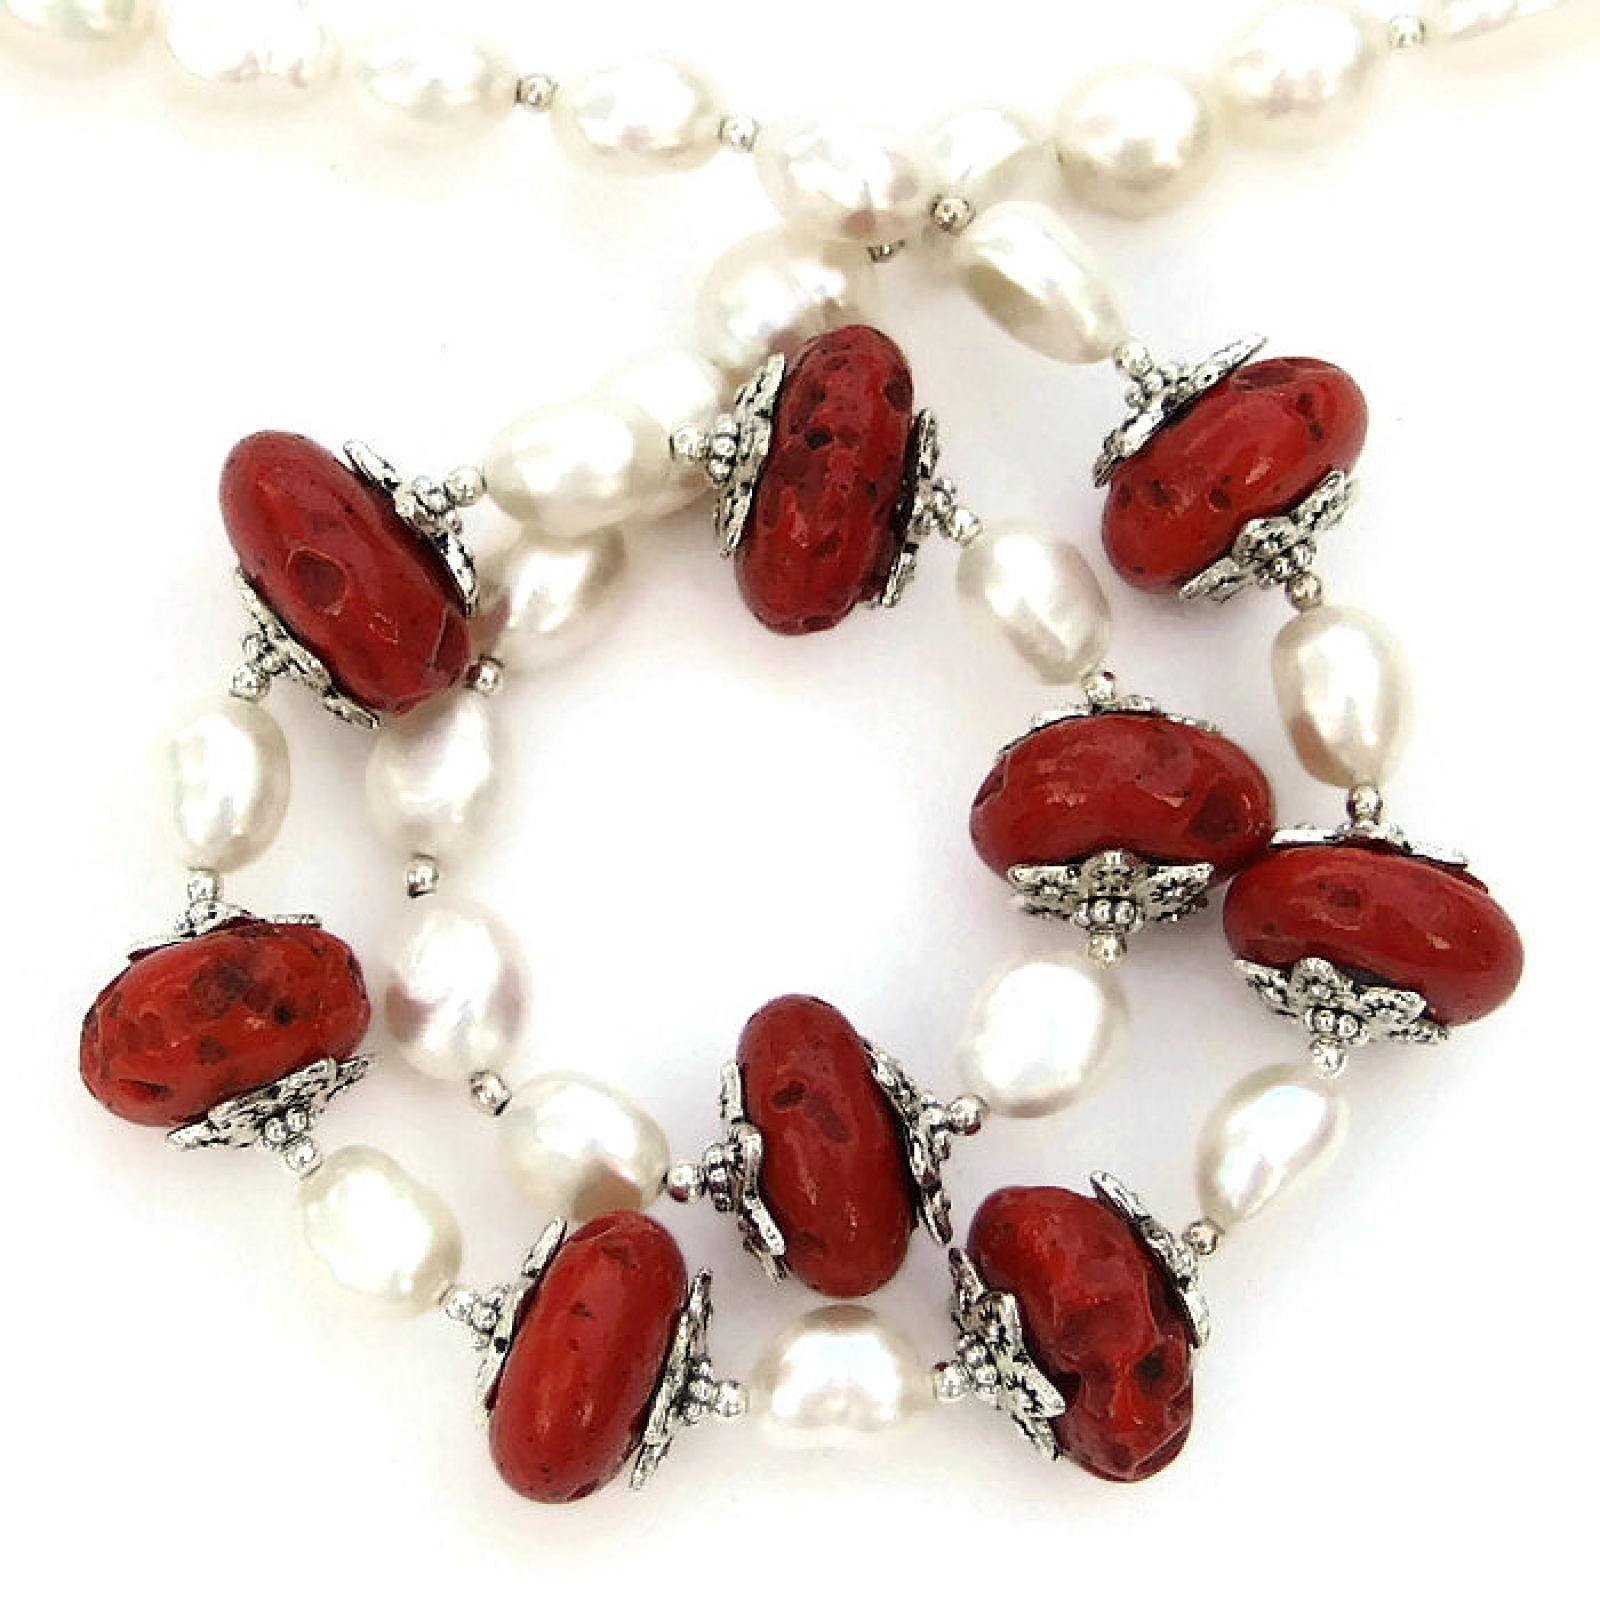 beaded collections jewelry pendants making beads orig for sets of blogs red diy